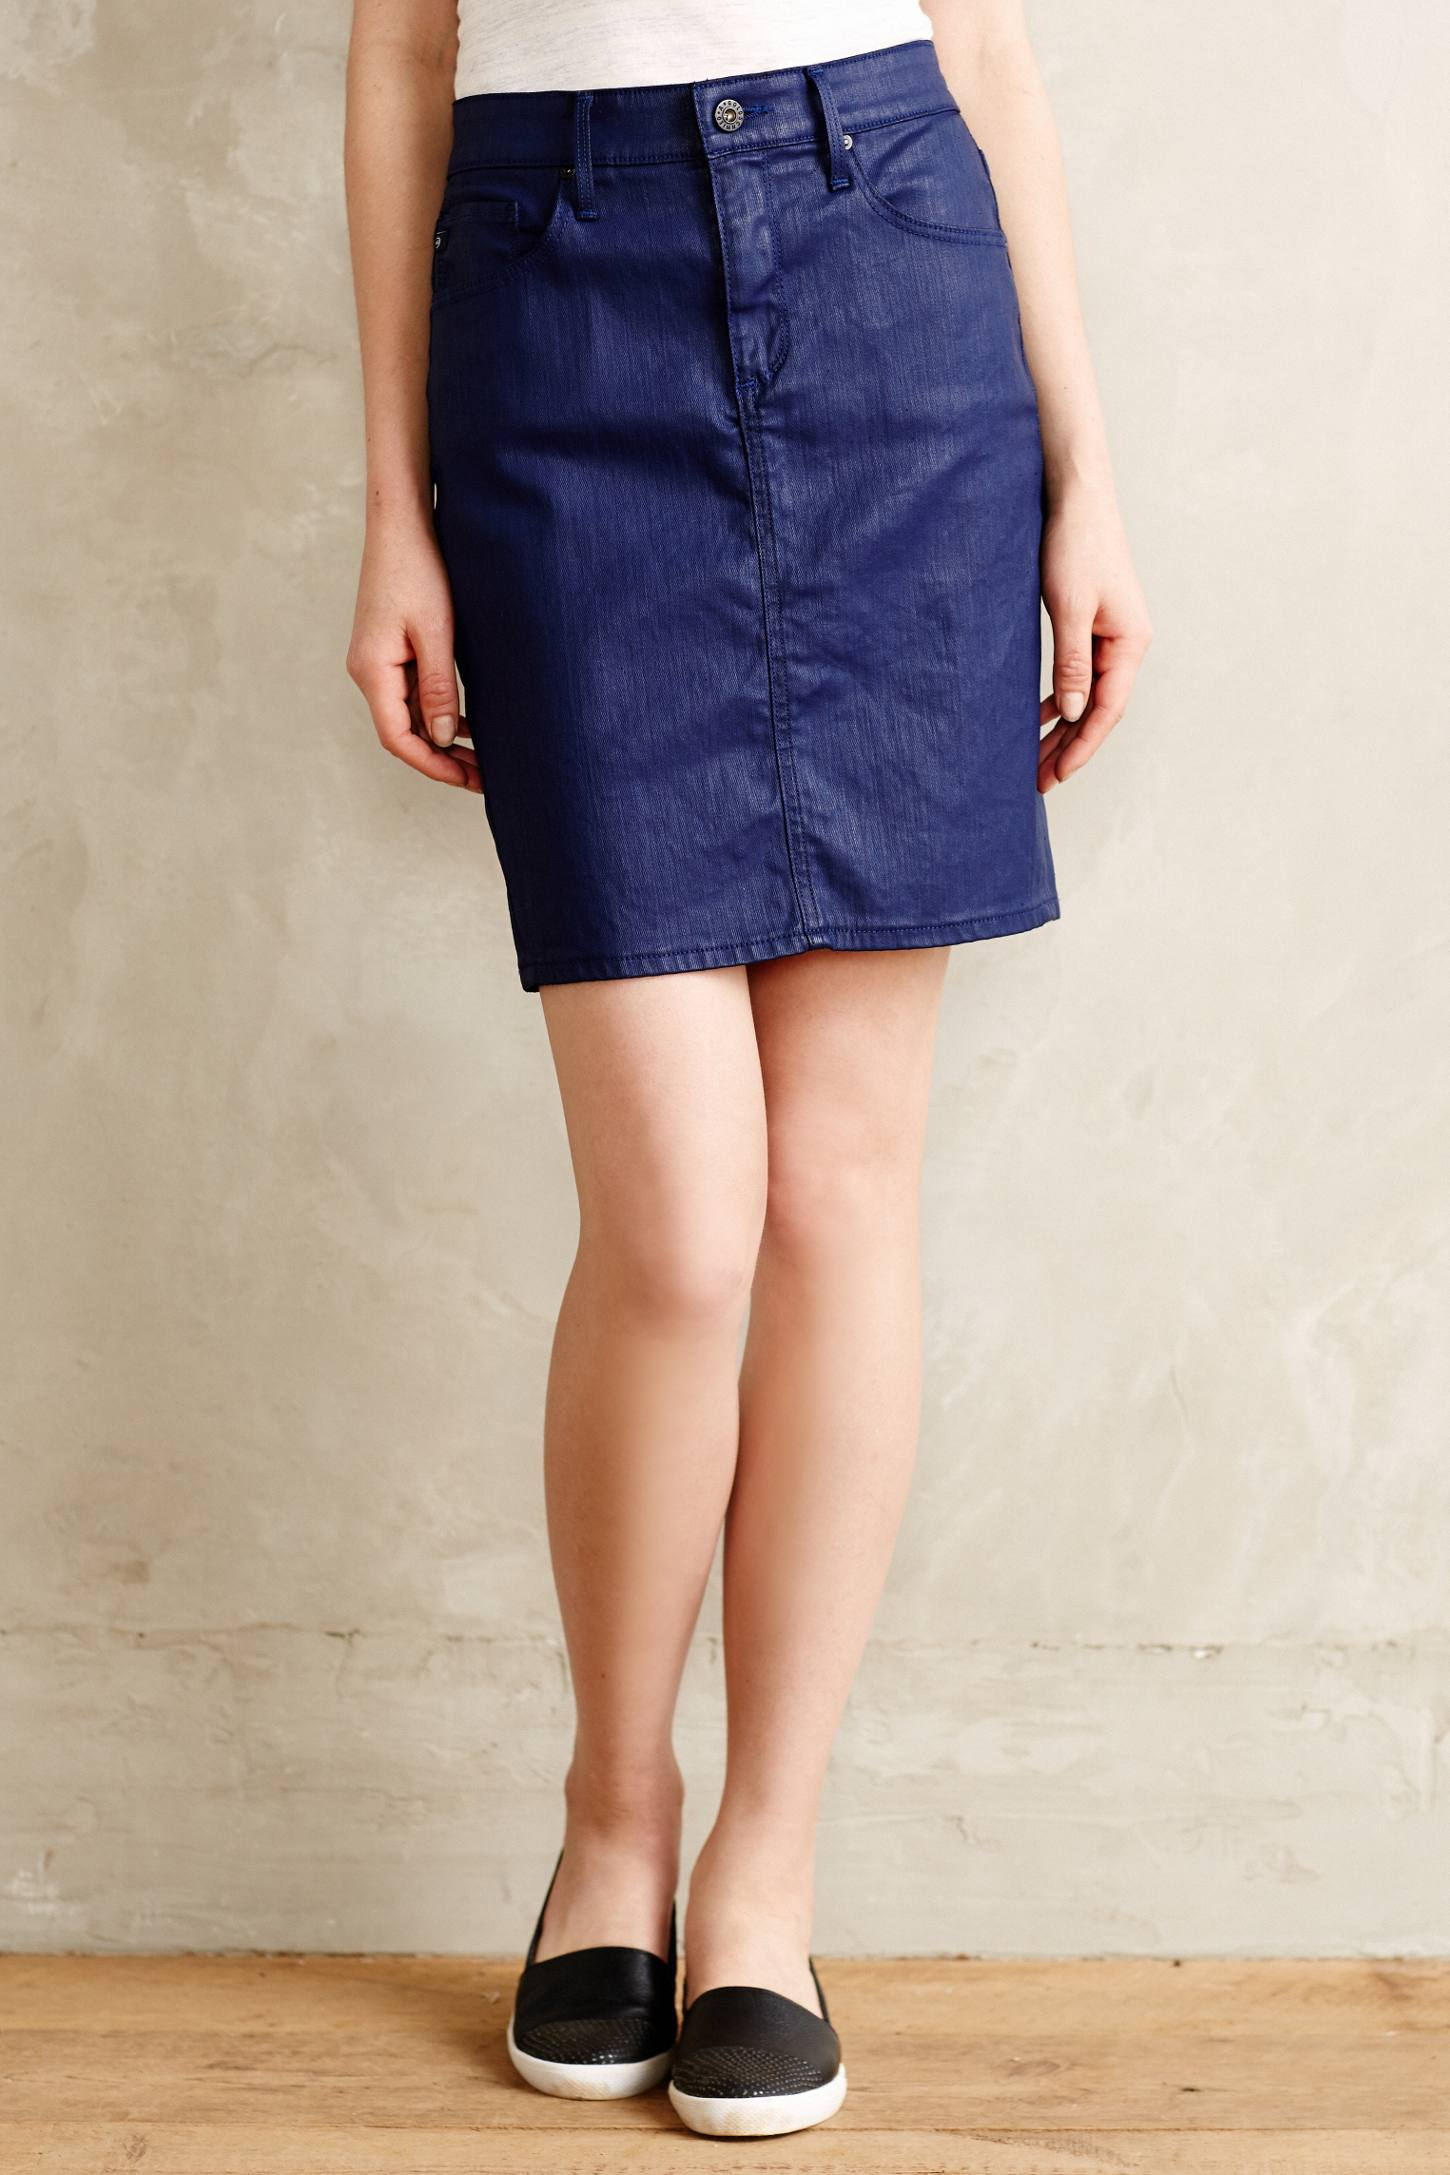 ag adriano goldschmied coated denim pencil skirt in blue